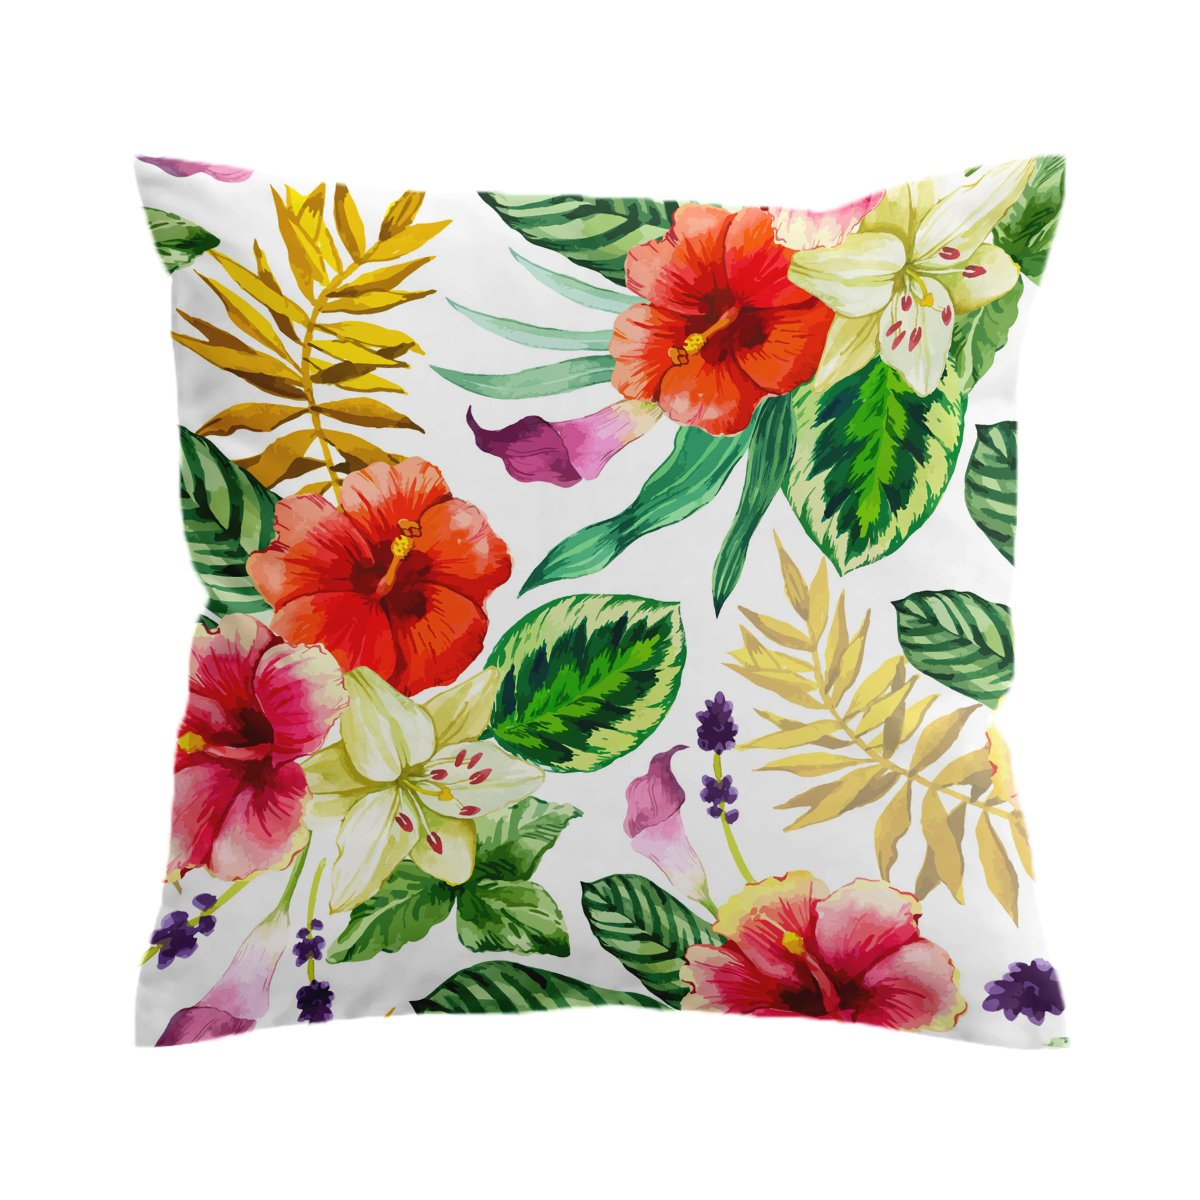 Tropical Flora 2 Pillow Cover-Coastal Passion